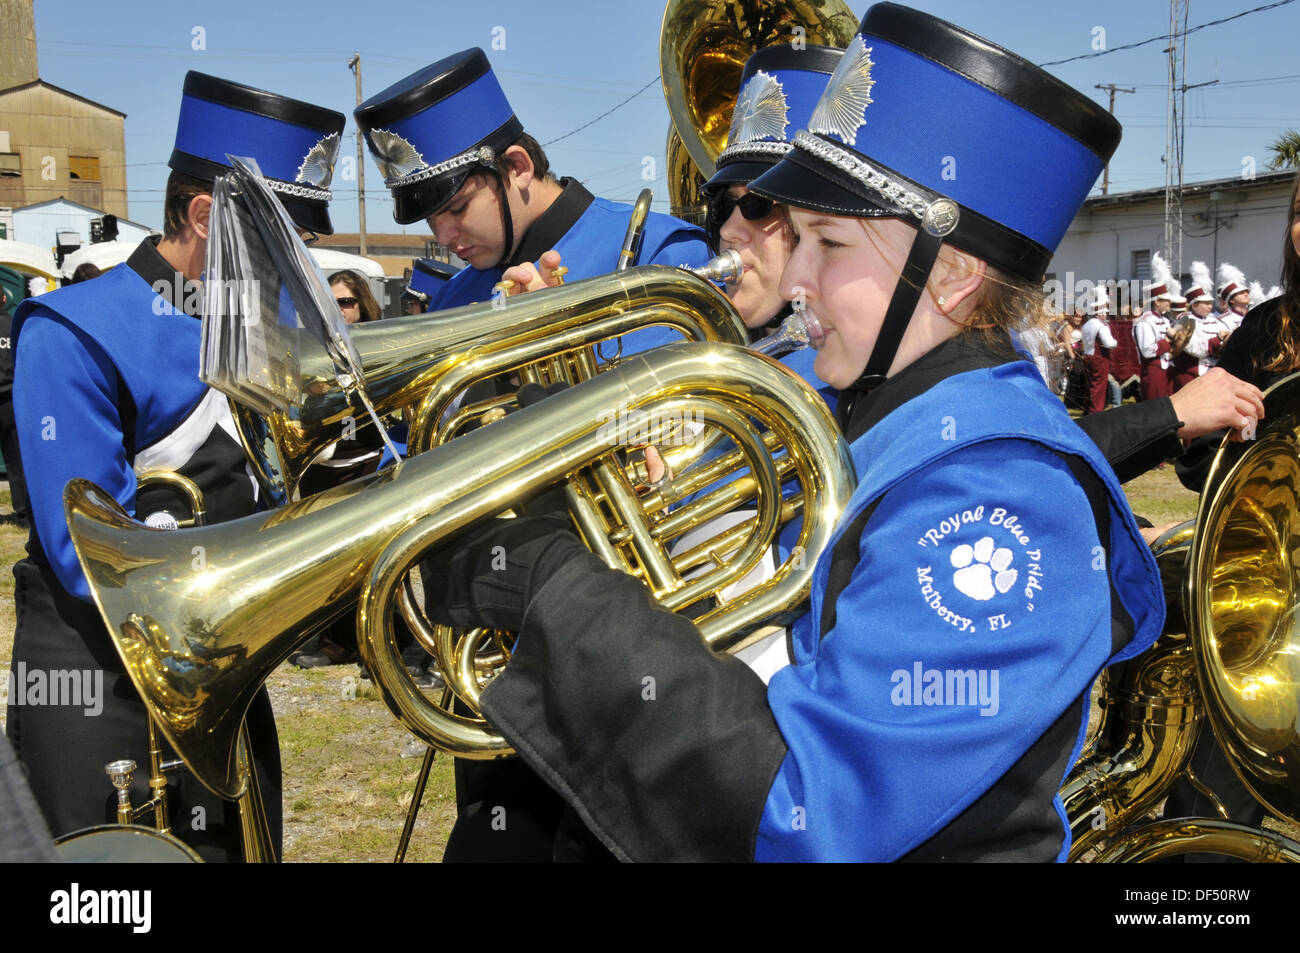 High school band member plays french horn at Strawberry Festival Parade, Plant City, Florida, USA - Stock Image